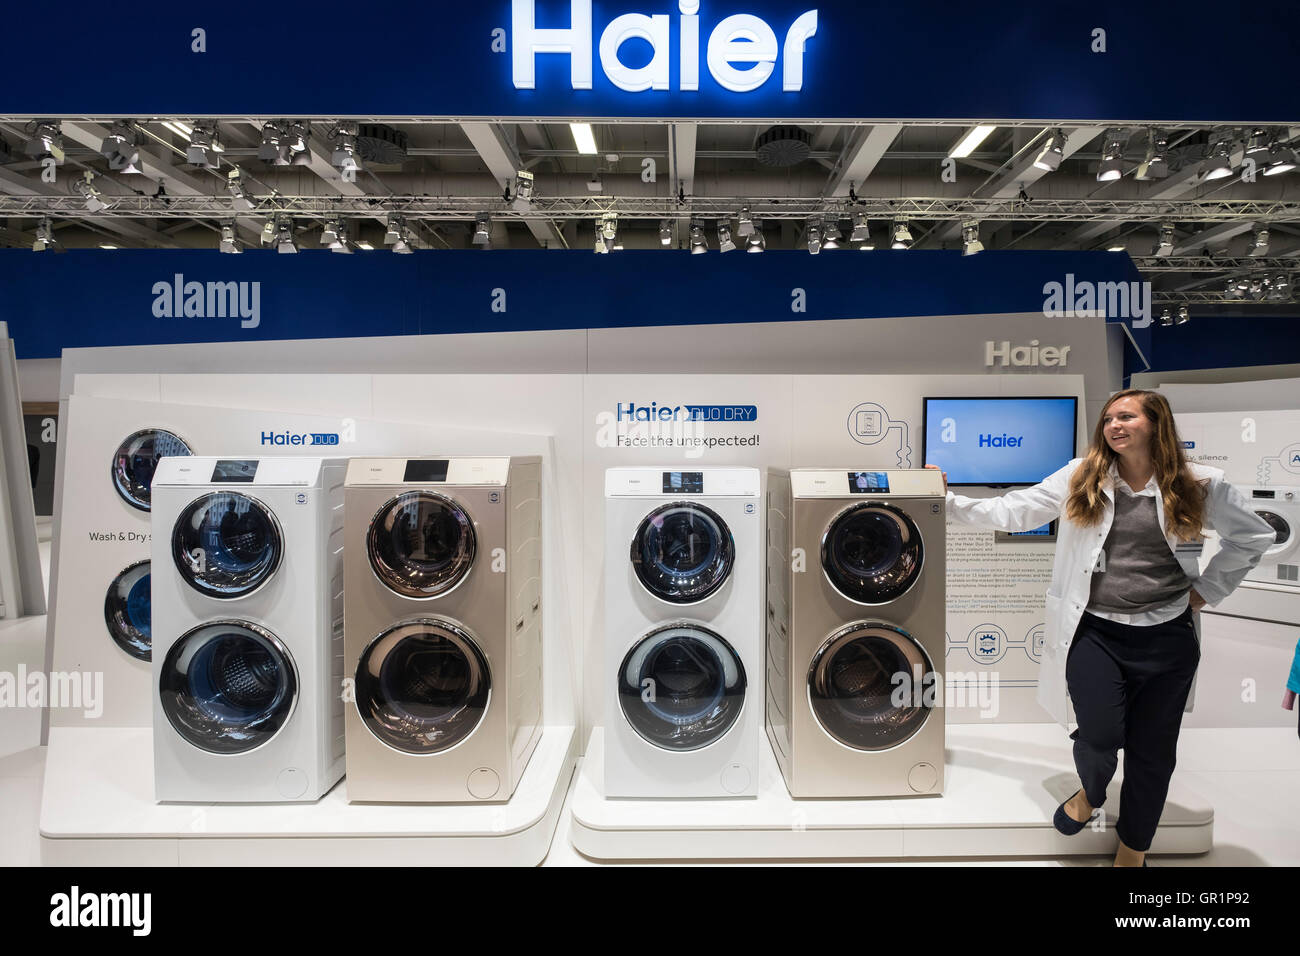 New twin washing machine and dryers by Haier at 2016  IFA (Internationale Funkausstellung Berlin), Berlin, Germany - Stock Image